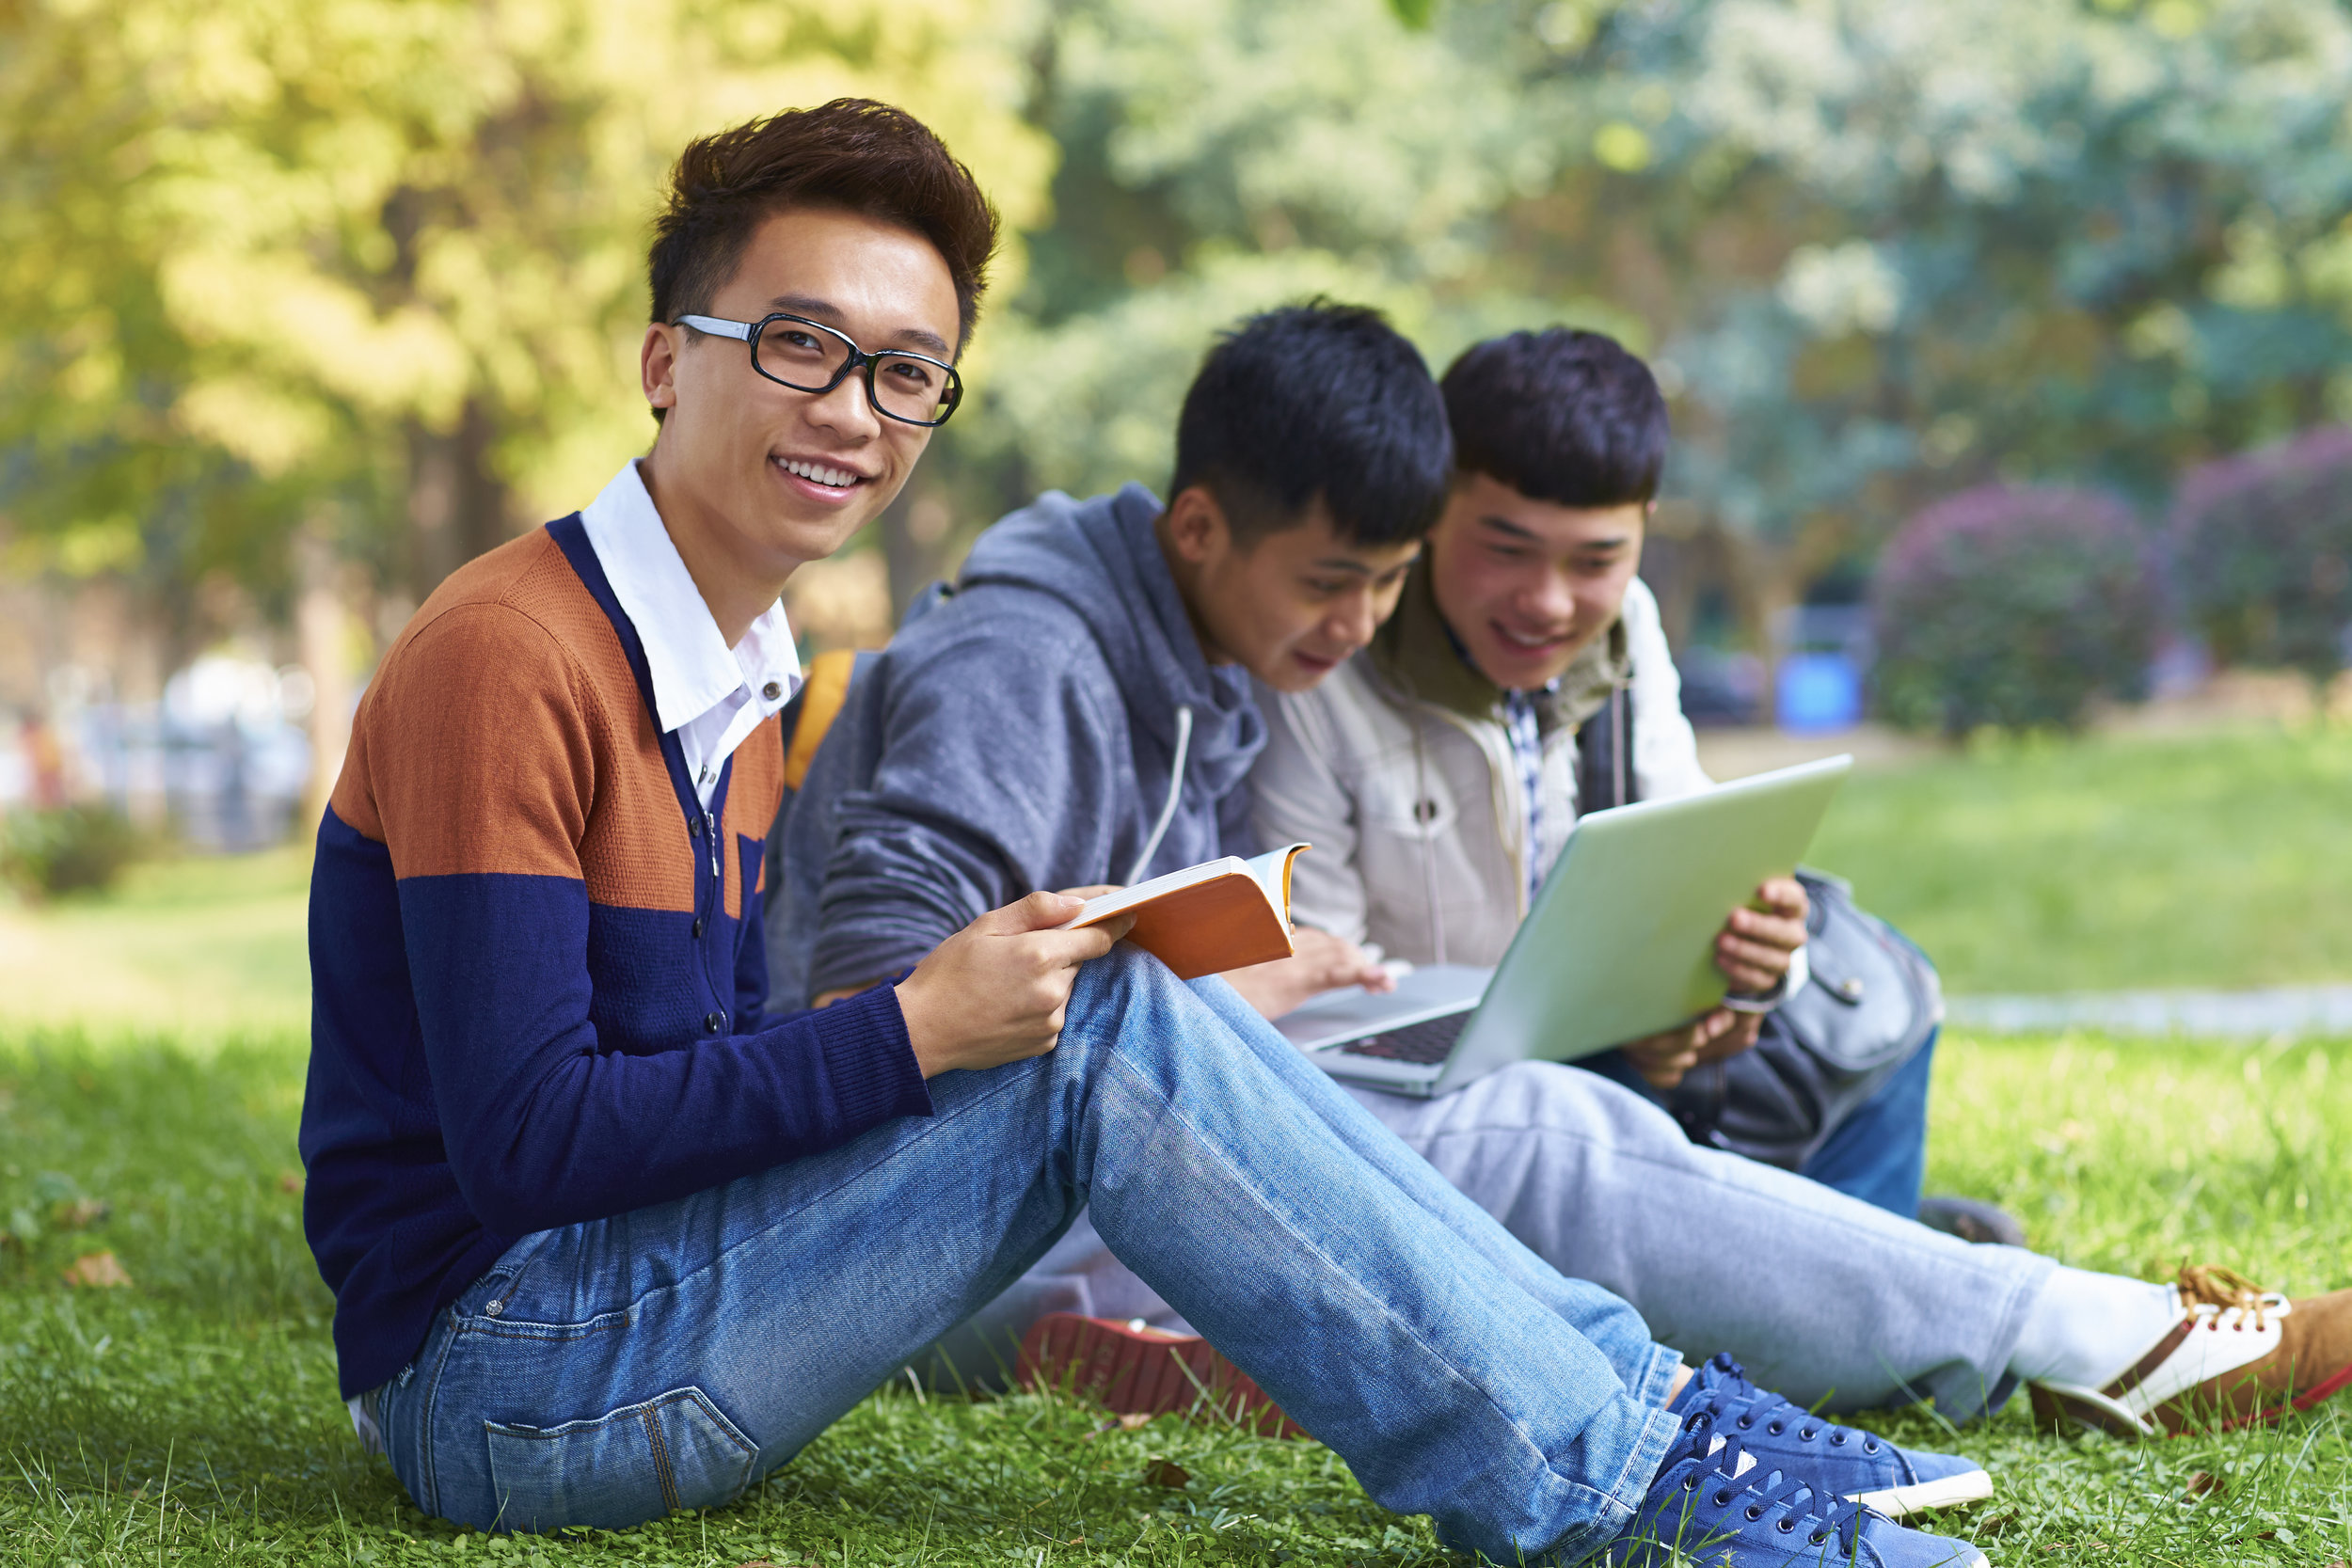 Tomorrow's campus donors? photo:Bo1982/shutterstock